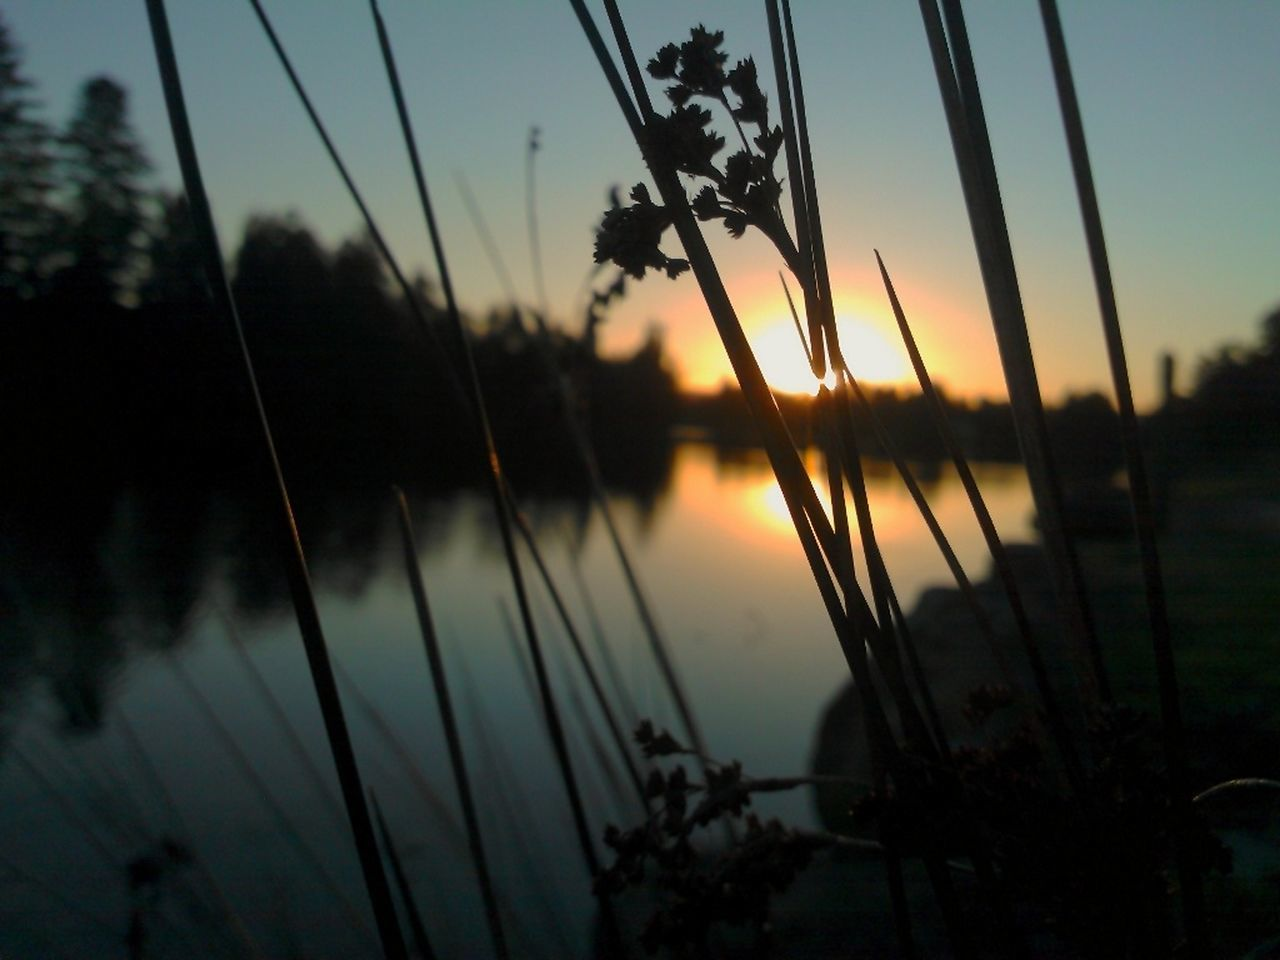 sunset, sky, nature, tree, no people, reflection, focus on foreground, water, outdoors, scenics, beauty in nature, tranquil scene, silhouette, growth, lake, tranquility, close-up, day